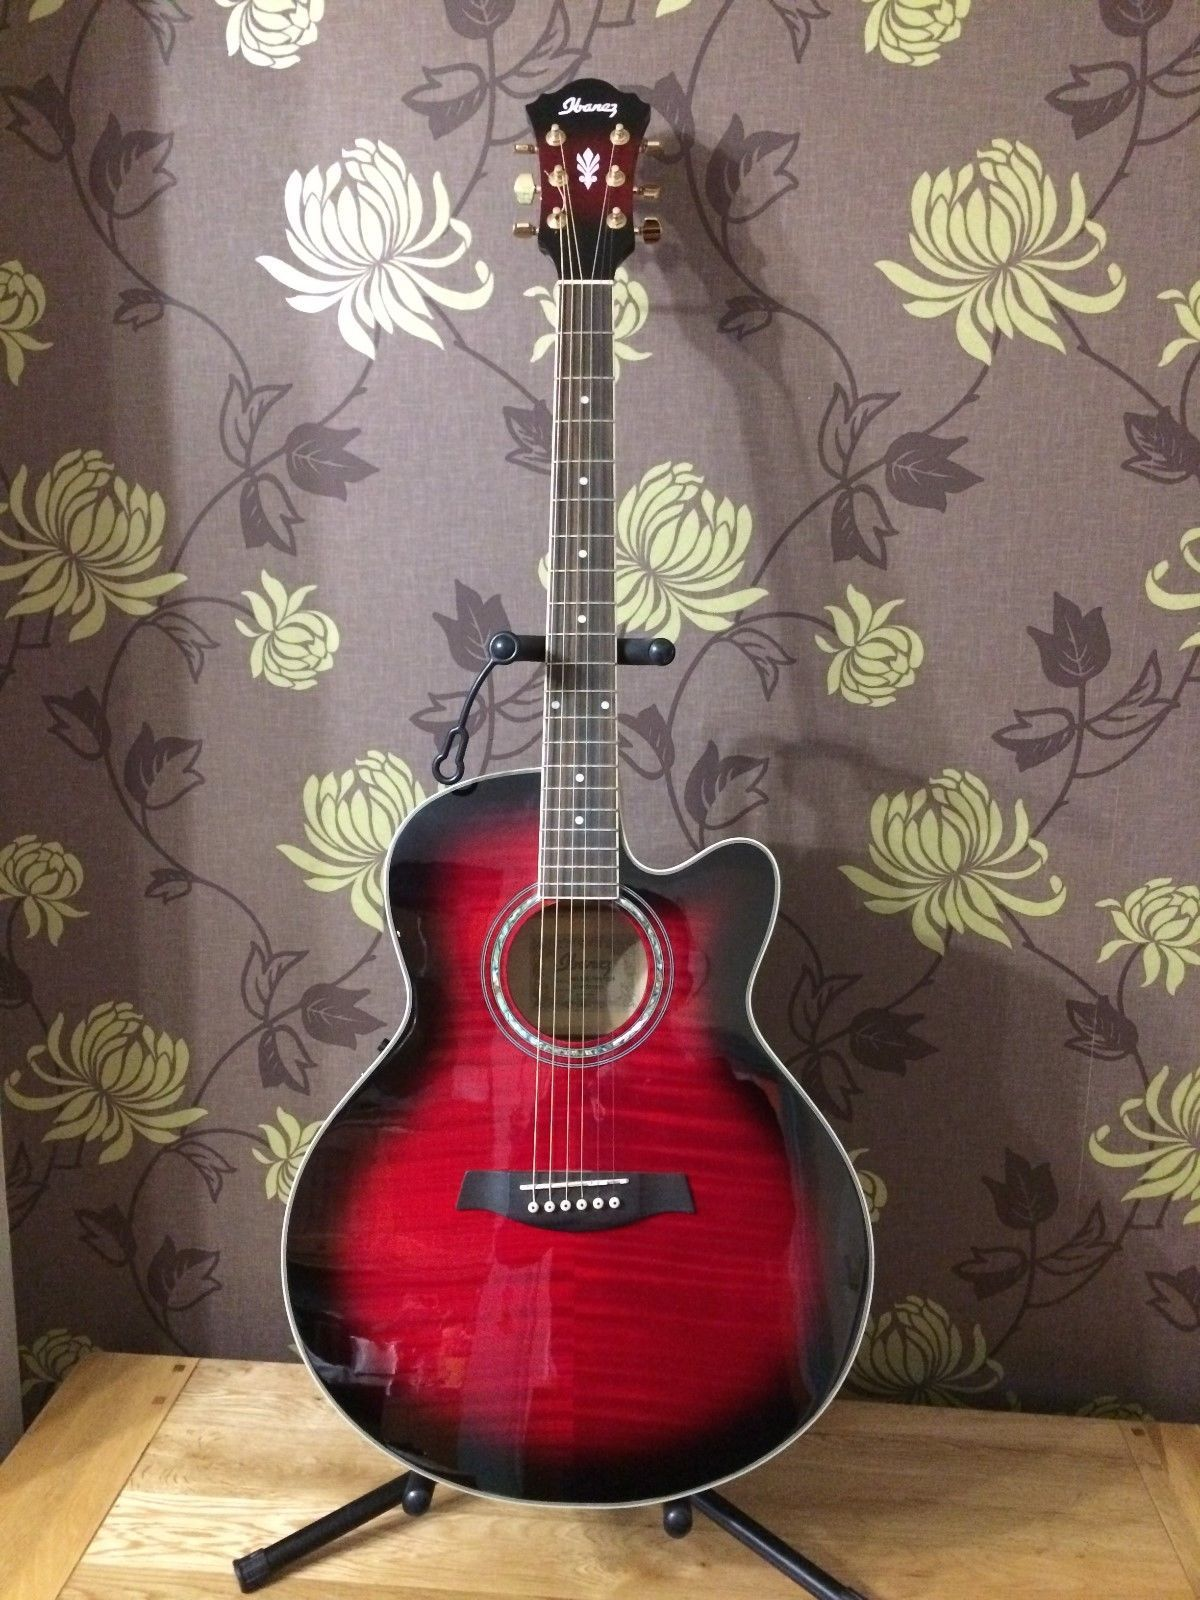 Ibanez AEL20E-TRS1203 Electro Acoustic Guitar, Transparent Red Sunburst -  Used